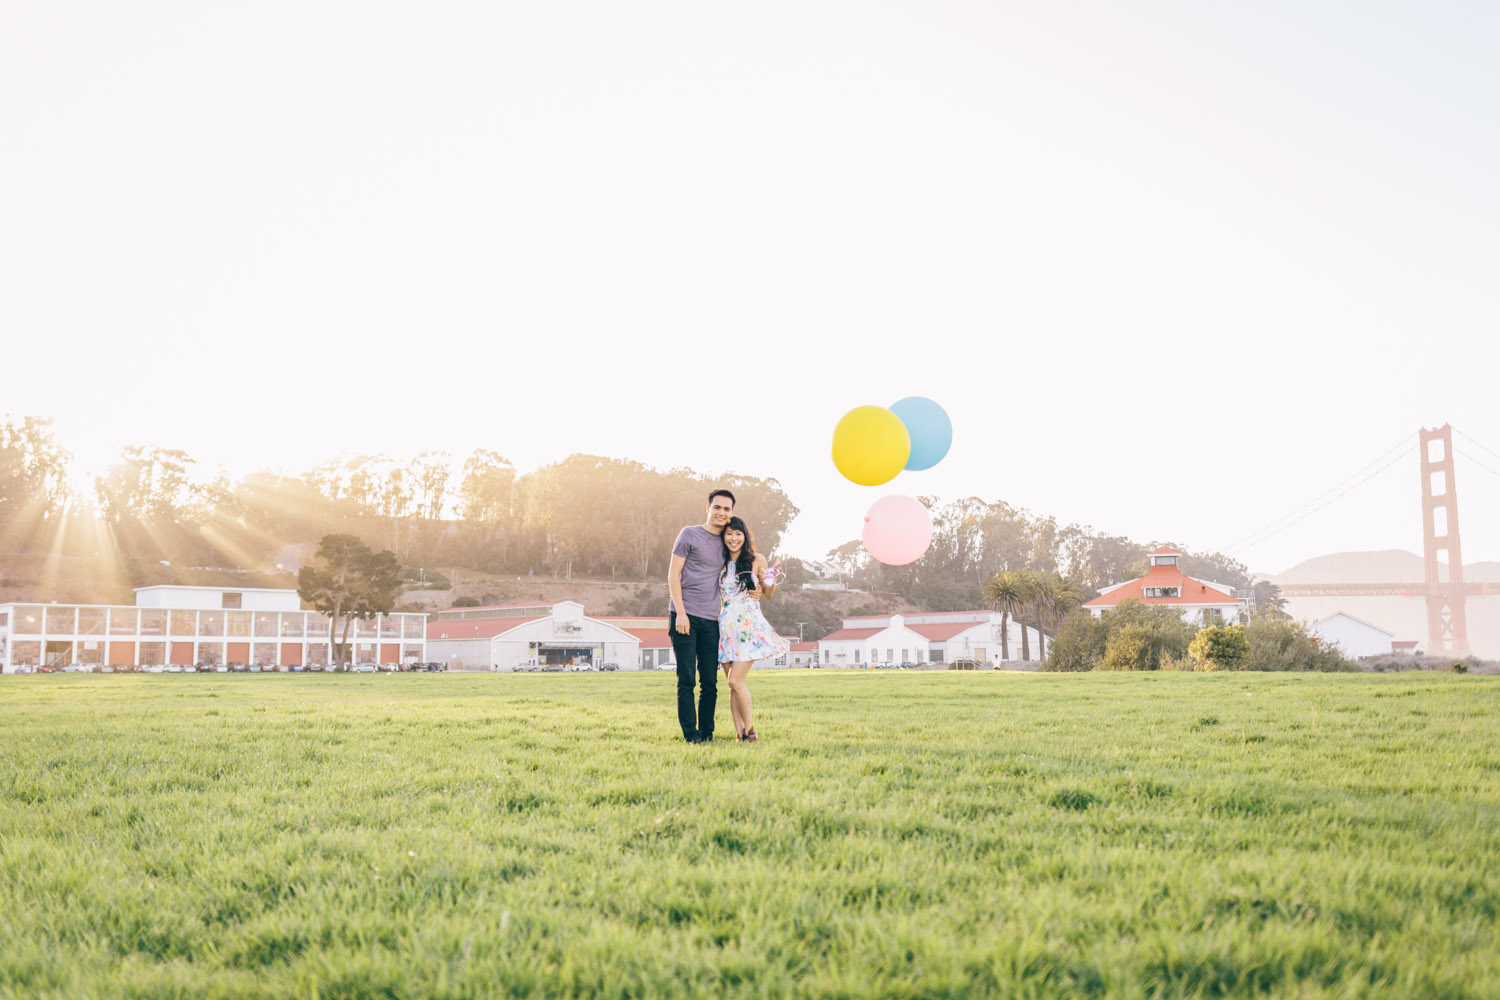 San Francisco Engagement Session Crissy Fields Palace of Fine Arts Engagement Photos by Engagement and Wedding Photographer JBJ Pictures-22.jpg